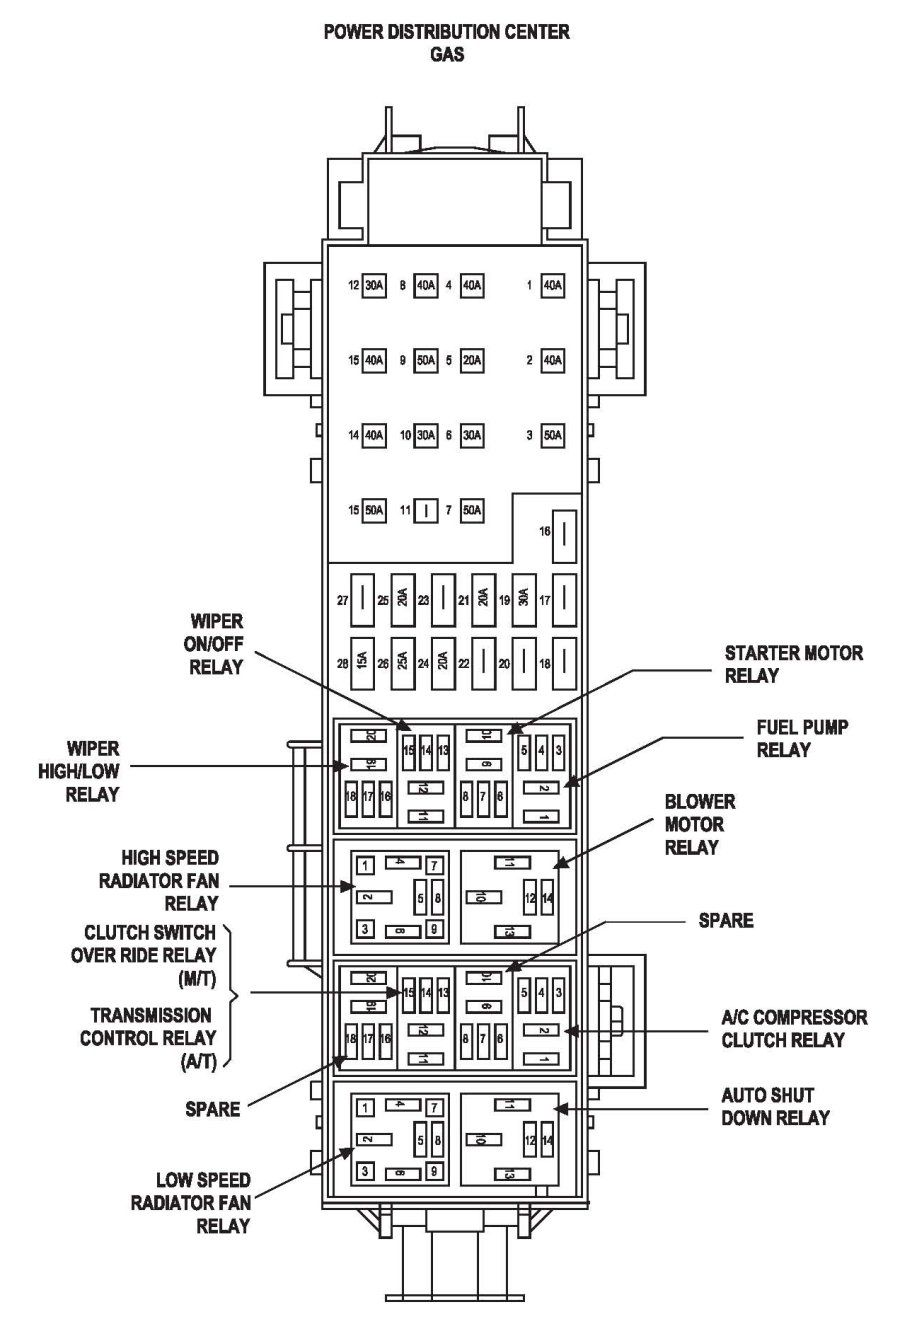 jeep liberty fuse box diagram image details jeep liberty rh pinterest com 1996 F 150 Underhood Fuse Box Diagram 2008 Silverado Fuse Box Diagram